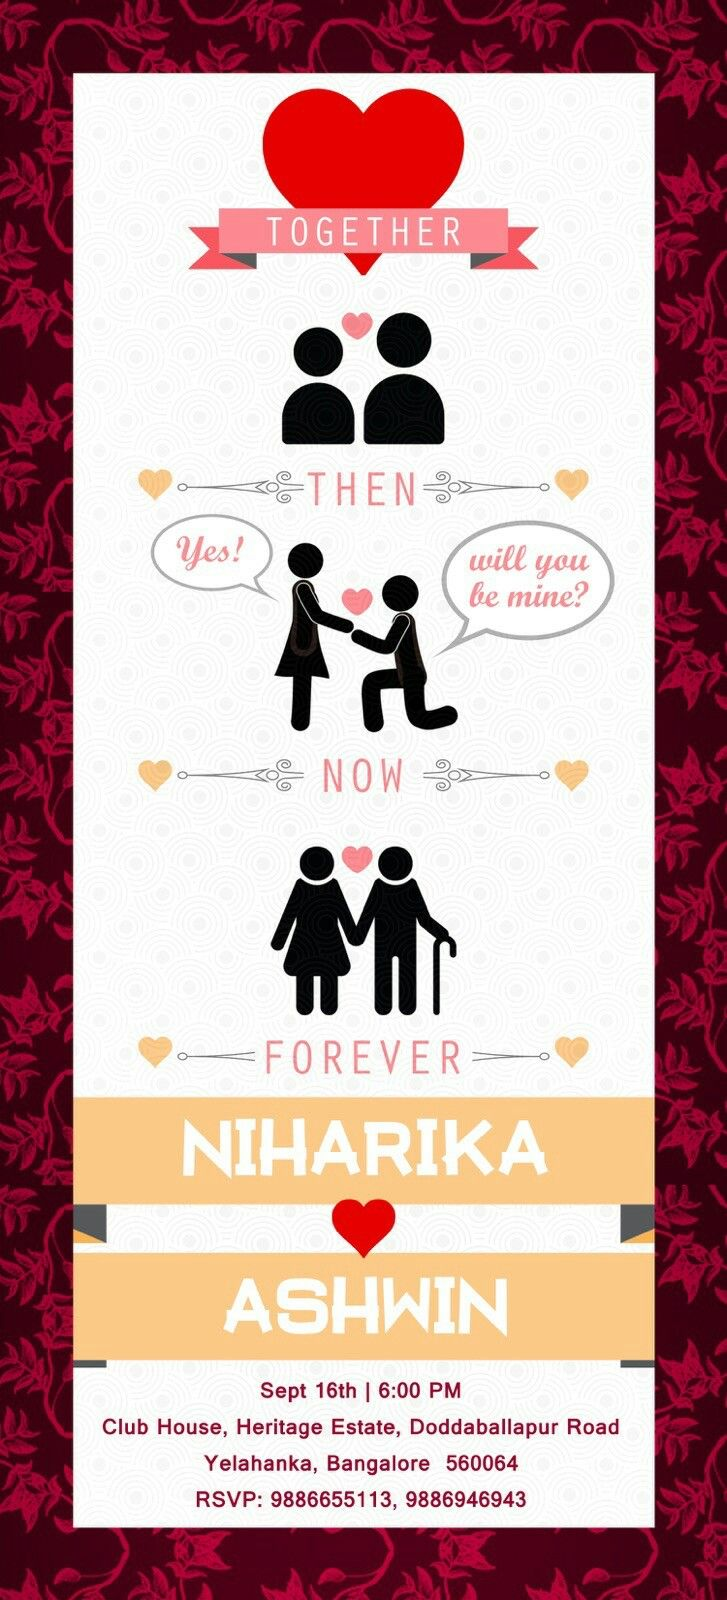 Quirky cute wedding cards bangalore india | Wedding cards ...